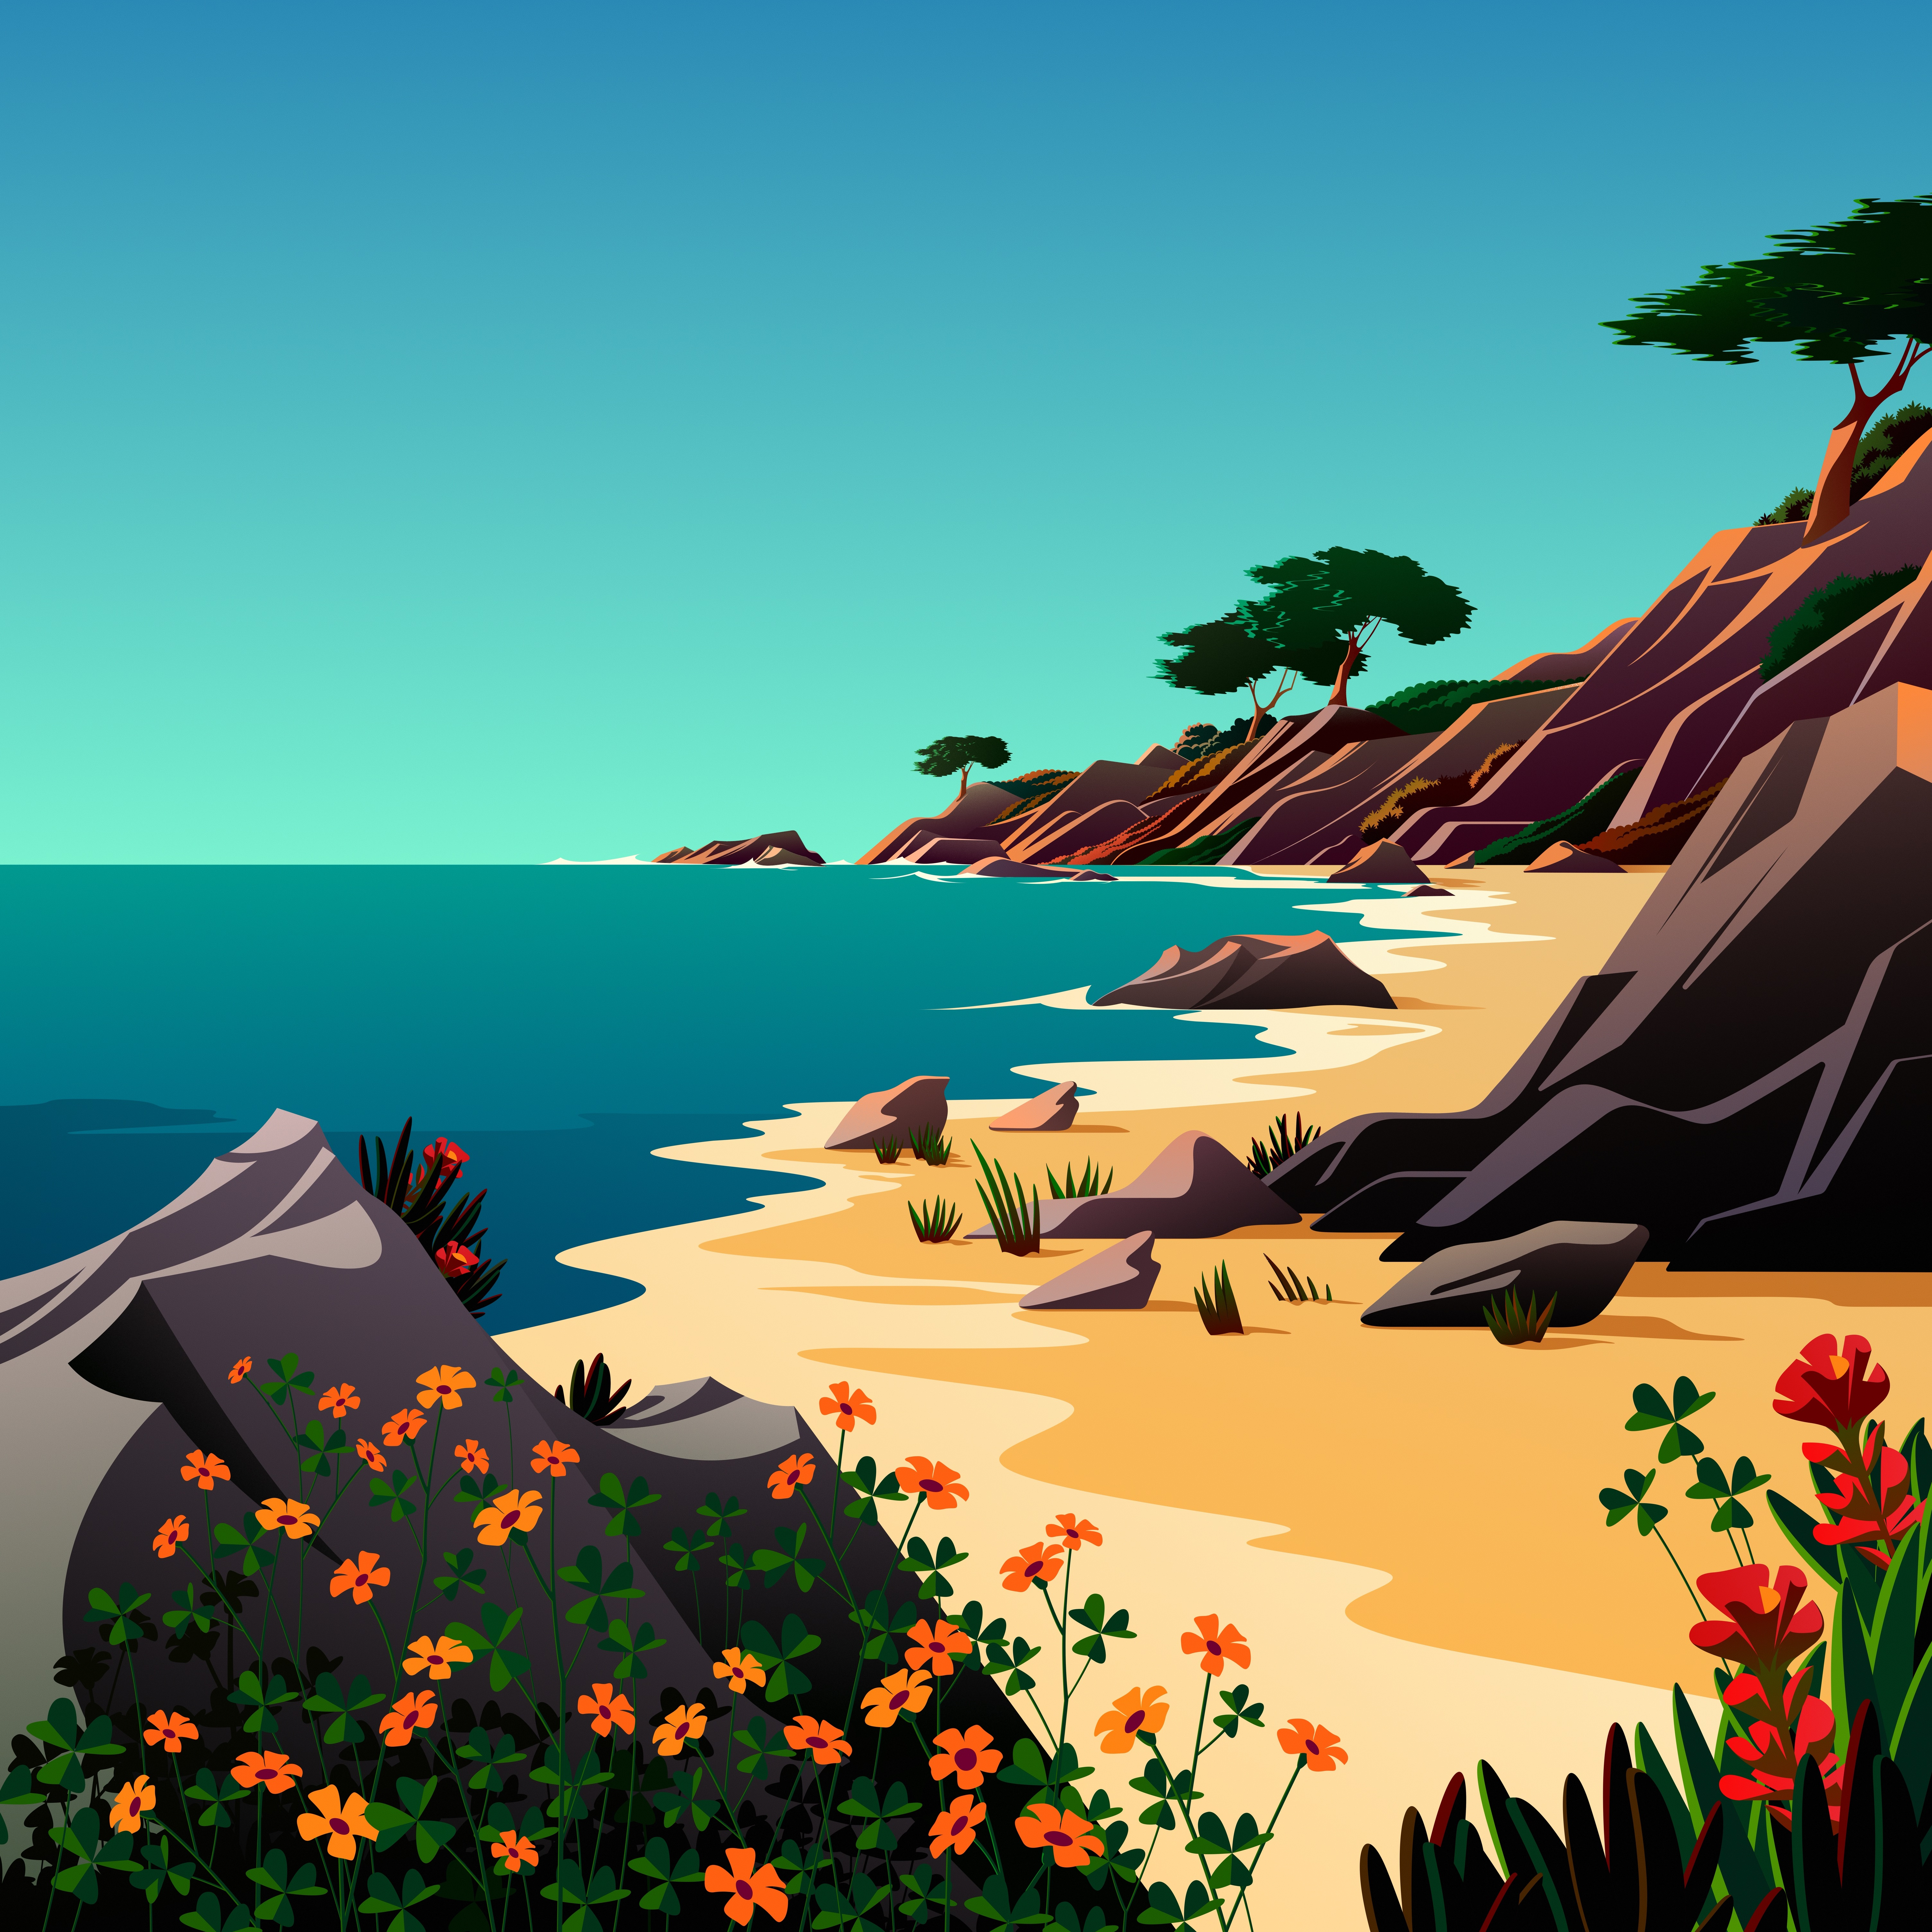 macOS Big Sur 11.0.1 includes even more new wallpapers ...